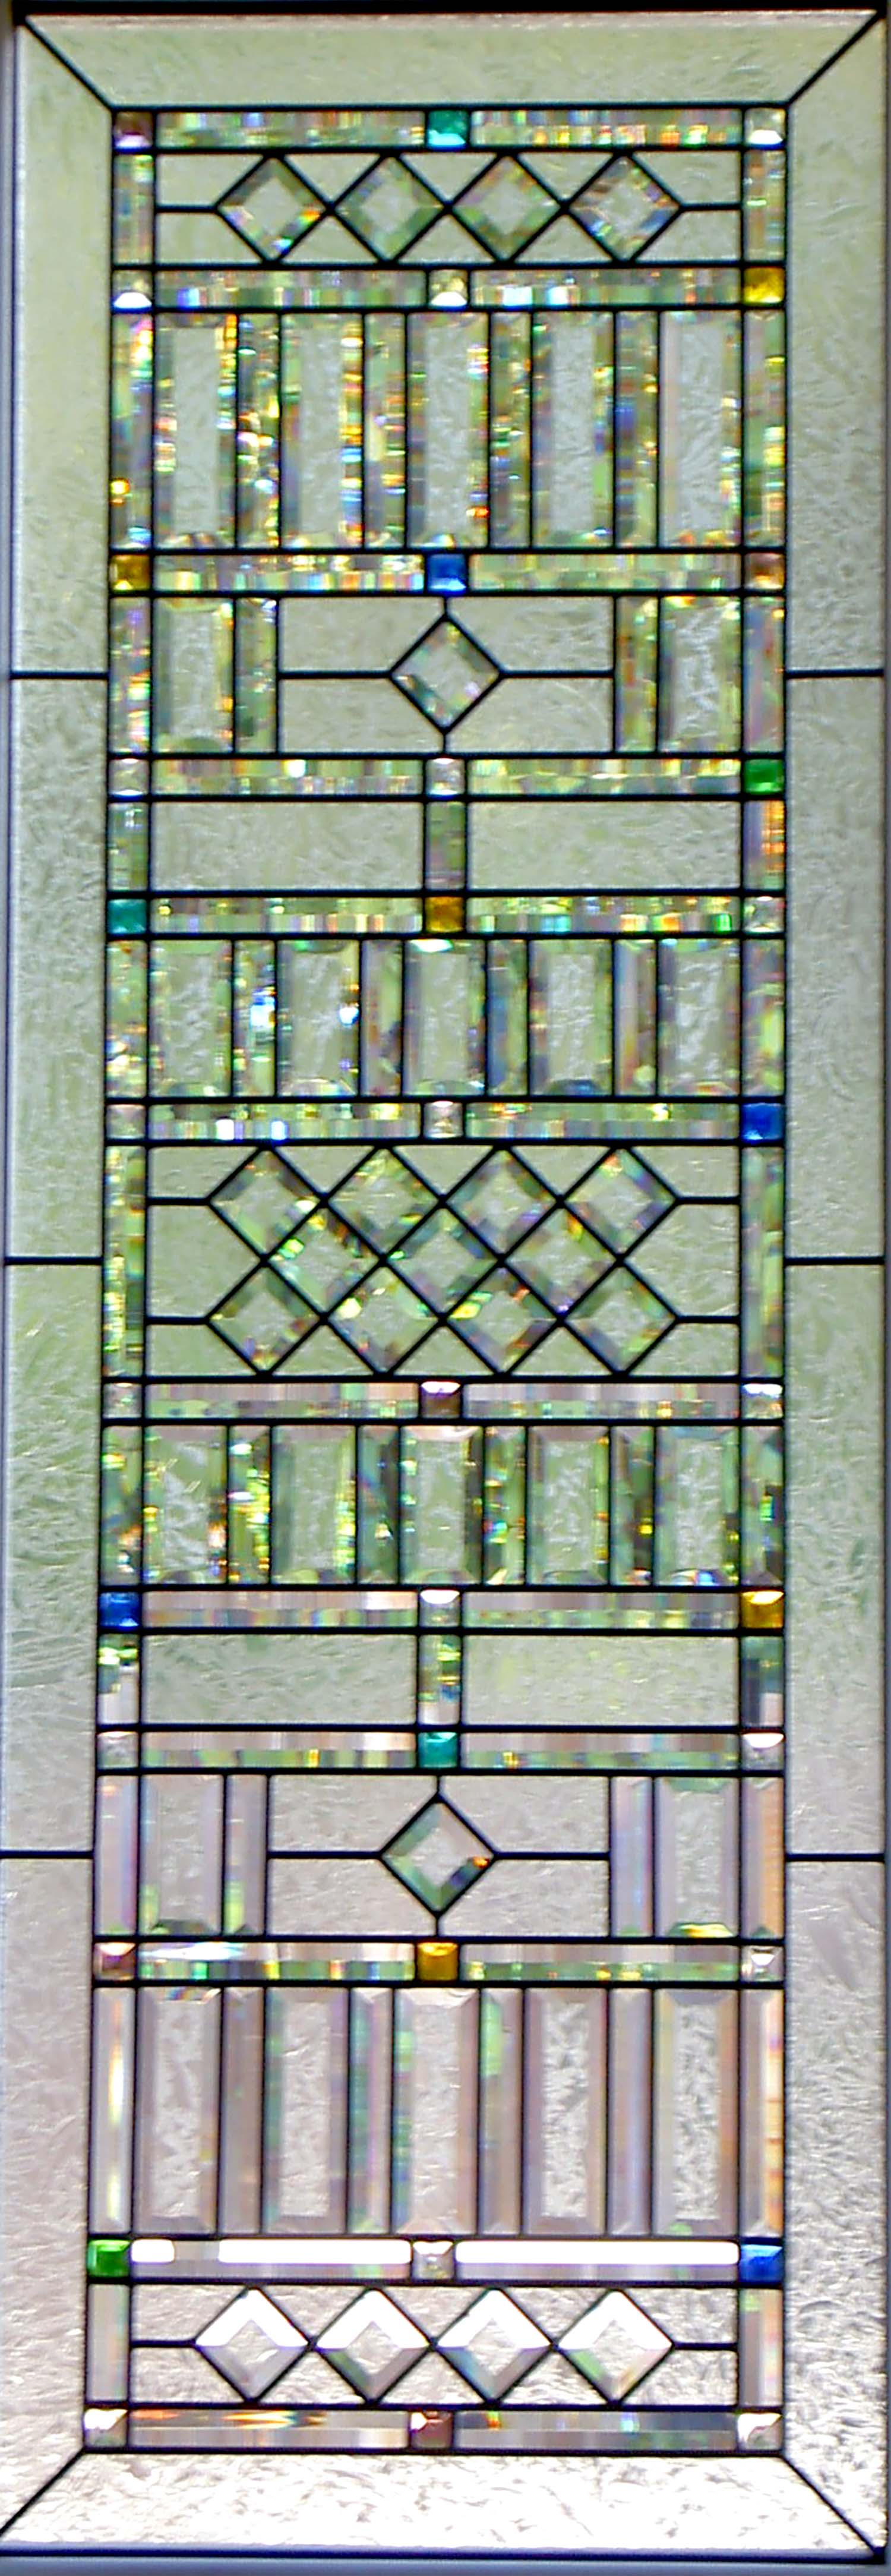 pencil bevel double glue chip clear texture leaded glass stained glass window palo alto atherton california san francisco san jose legacy glass2.jpg